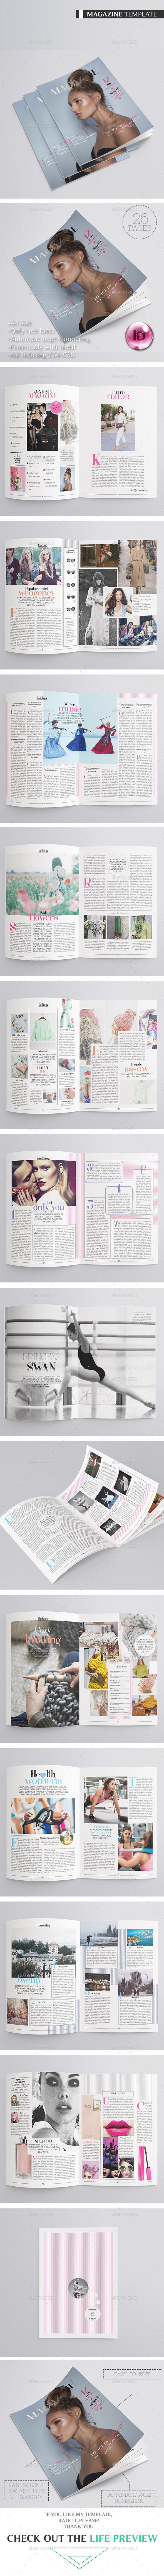 Fashion Magazine 26 Pages - Magazines Print Templates